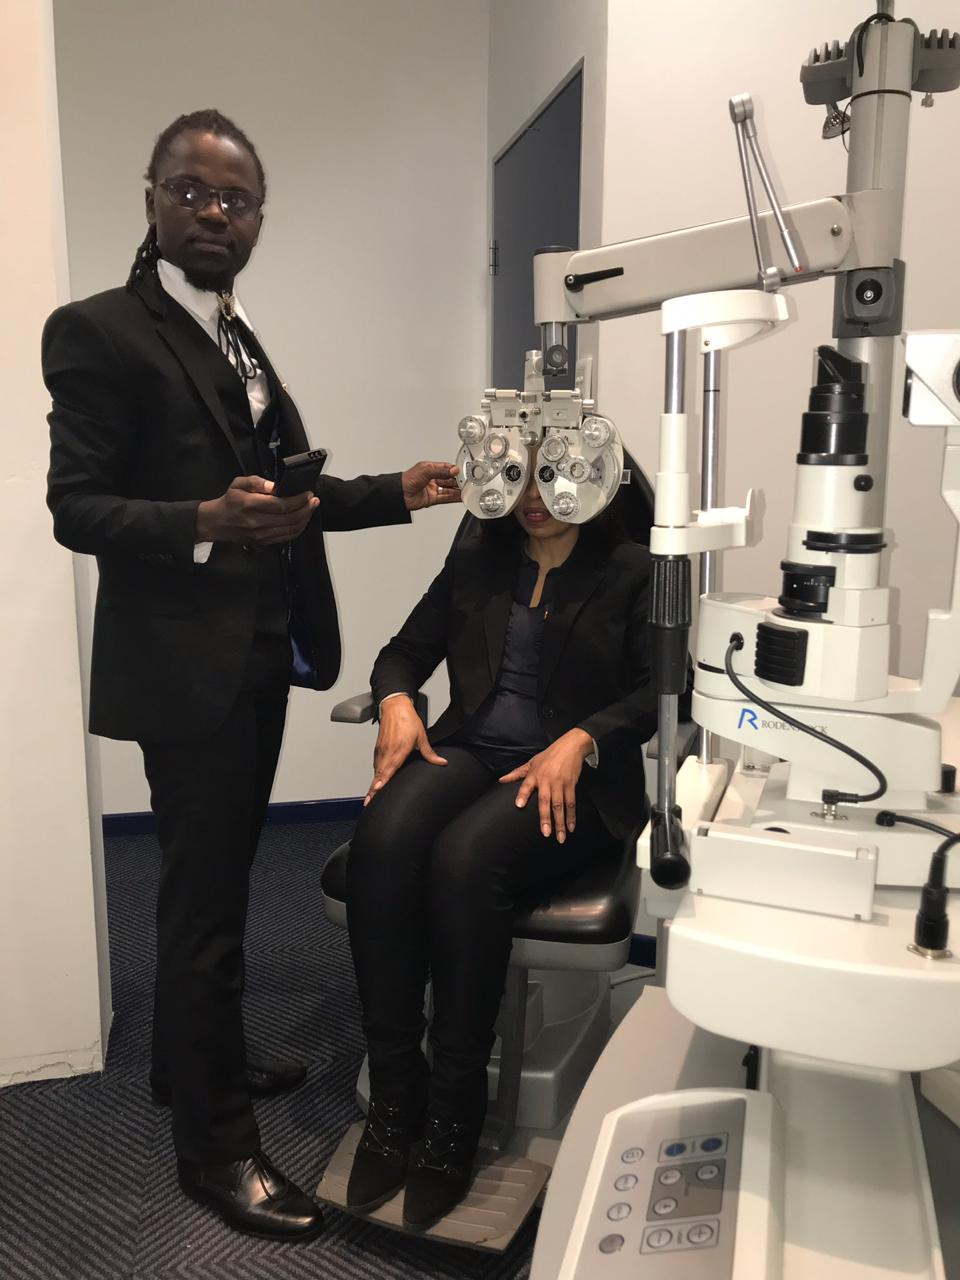 Optometrist Wiseman Mchabe examining a patient